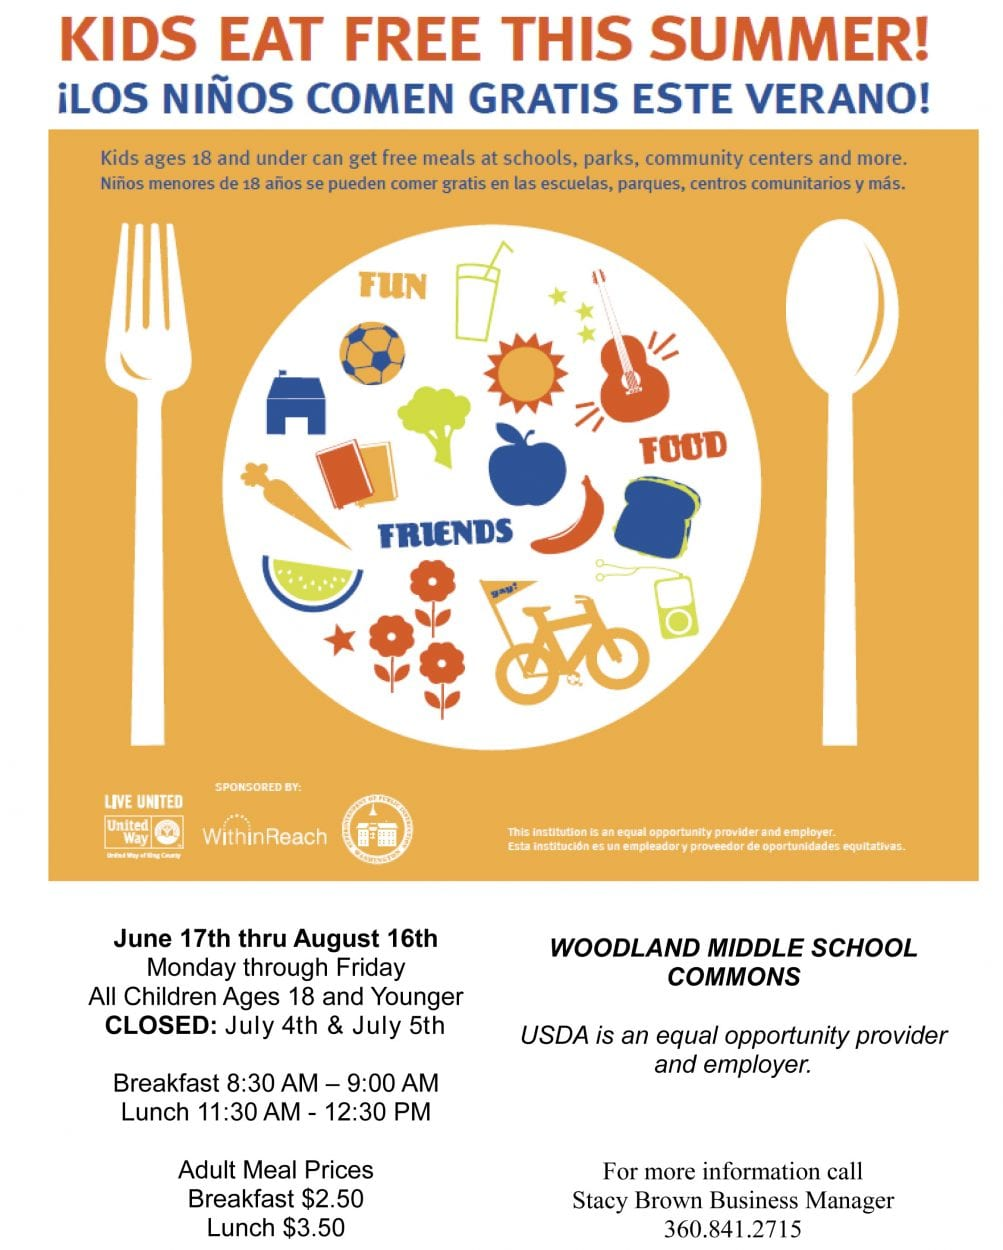 Community support and local grants help Woodland Public Schools offer free summer meals and backpacks